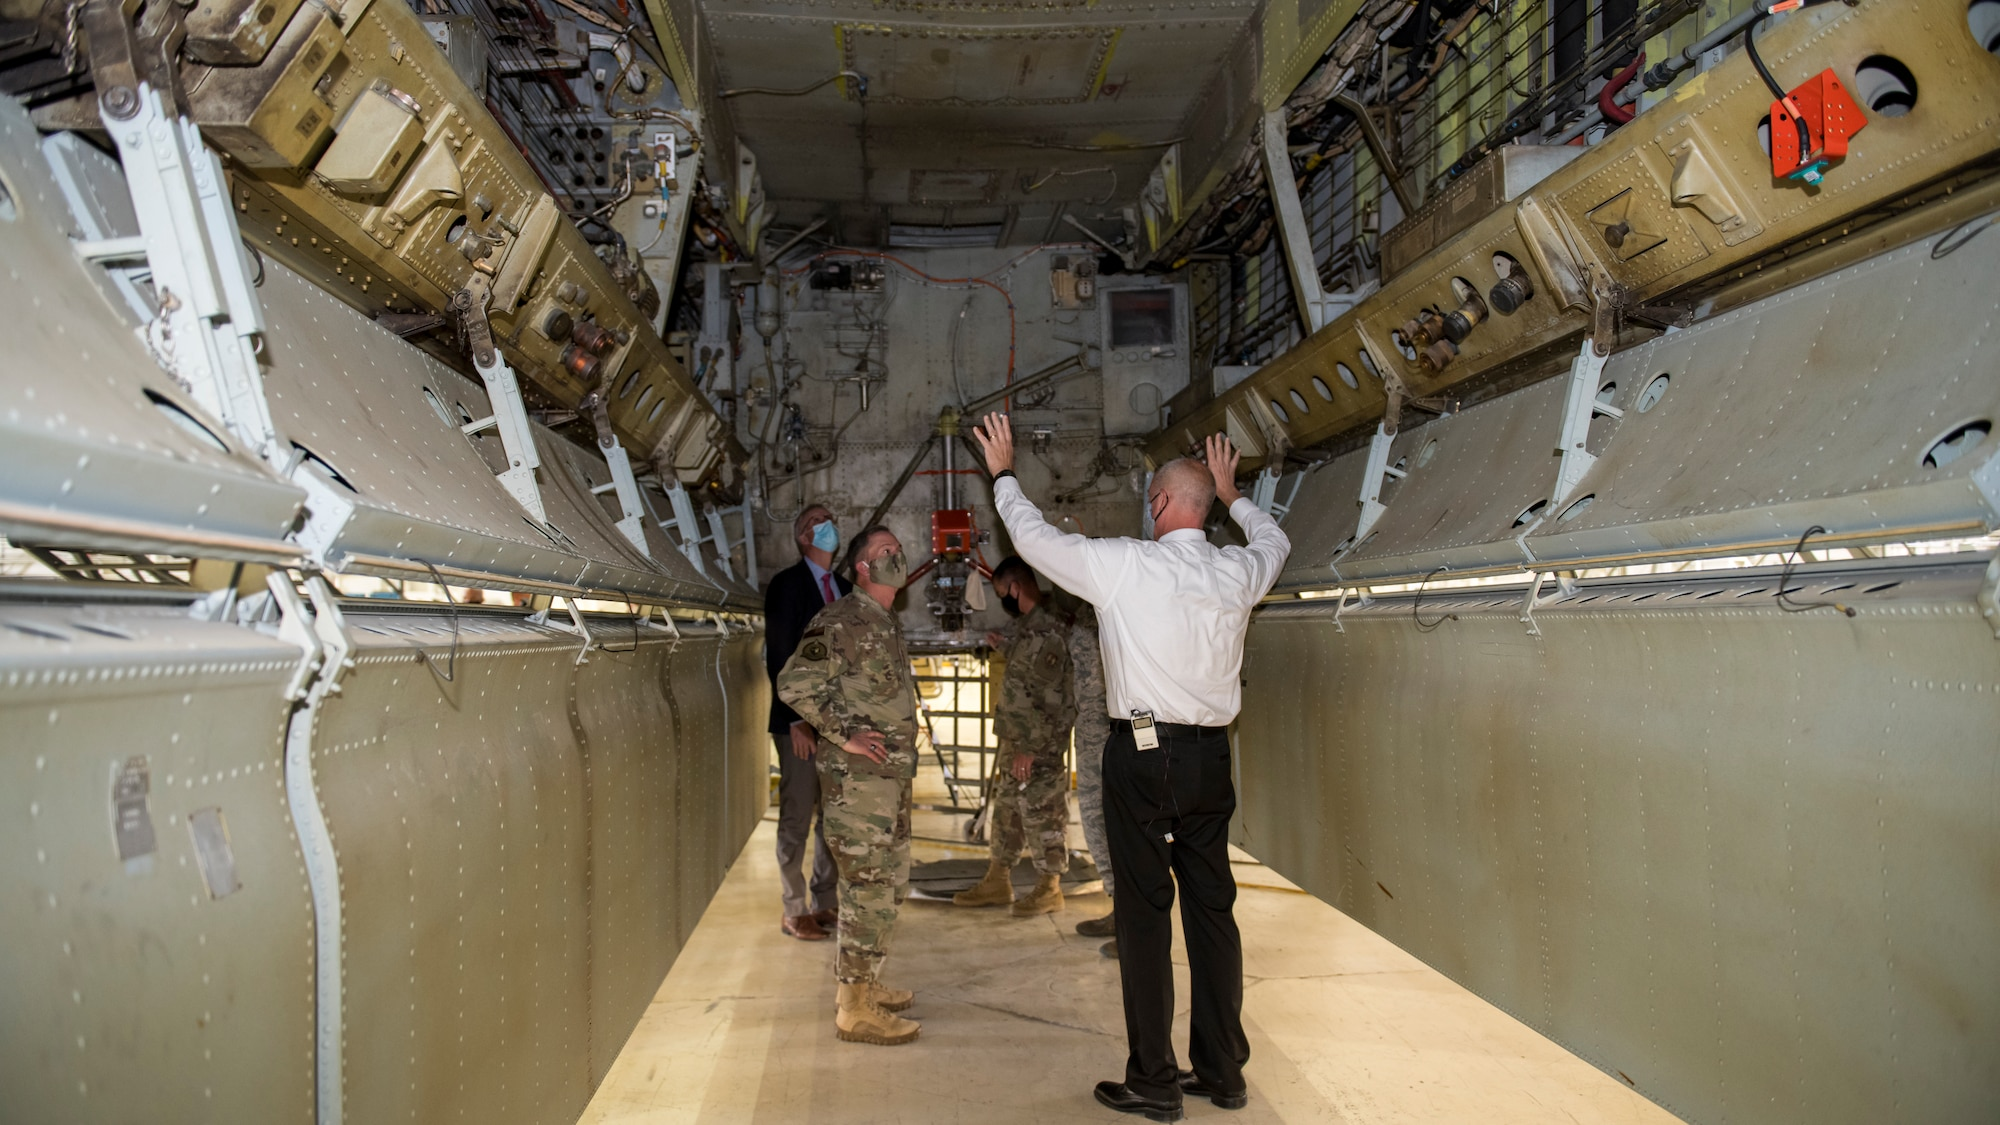 Air Force Chief of Staff Gen. David Goldfein receives a briefing on maintenance and test operations on a B-52 Stratofortress at Edwards Air Force Base, California, June 17. (Air Force photo by Giancarlo Casem)